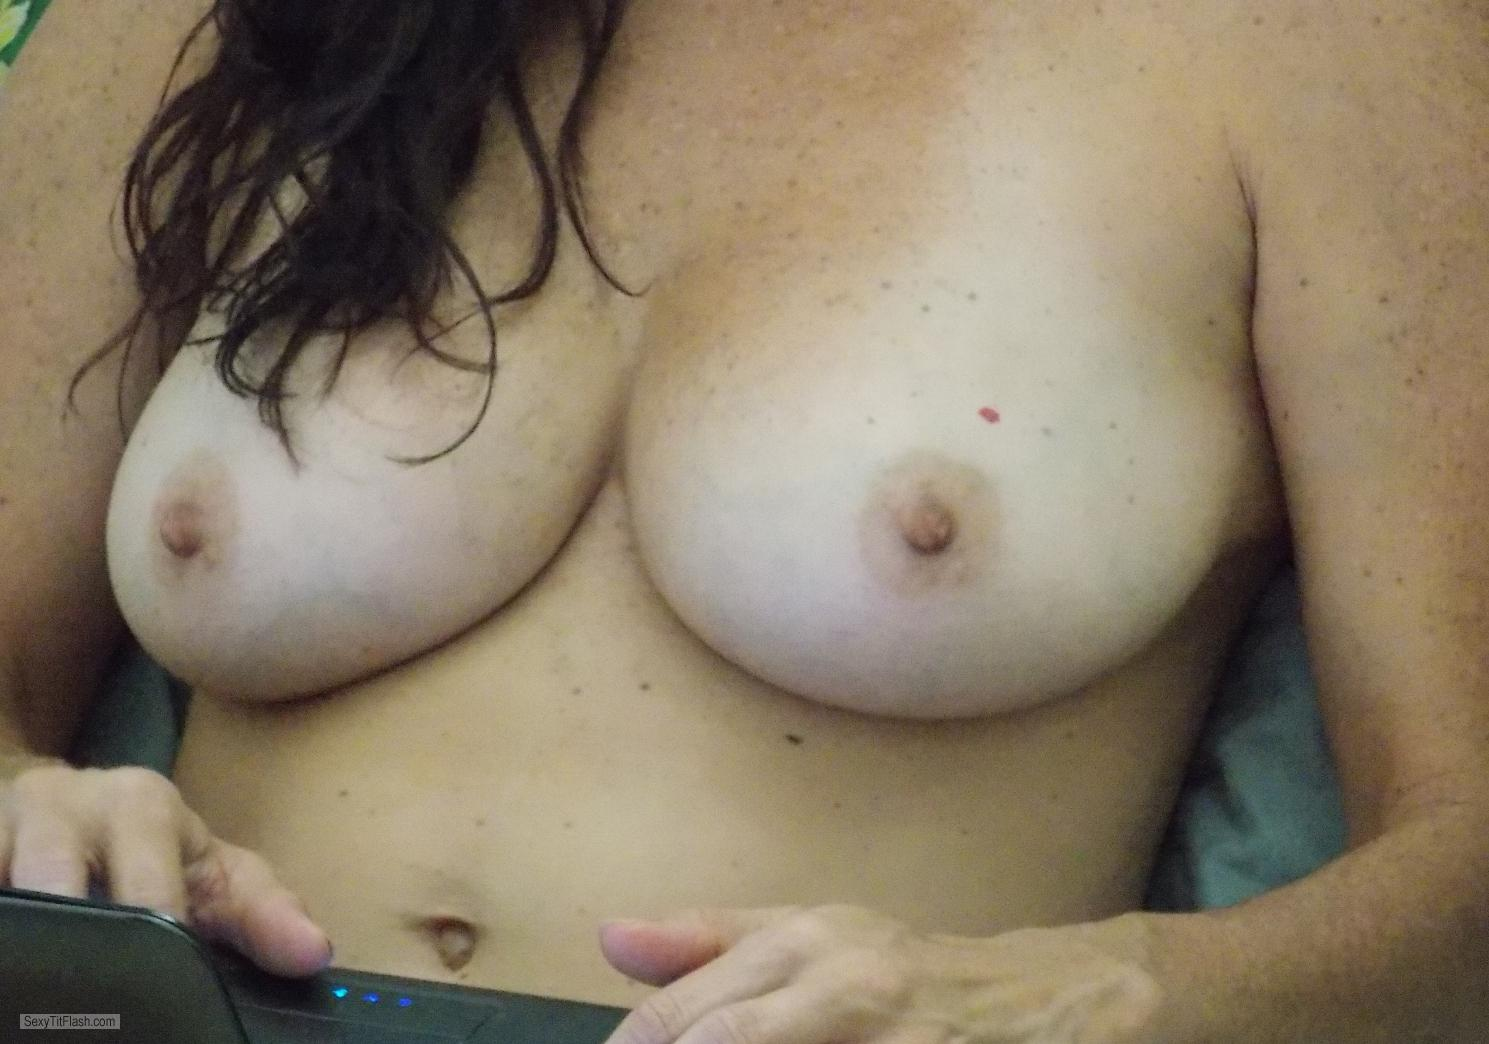 Tit Flash: Wife's Medium Tits - Fernanda From Brazil from Brazil